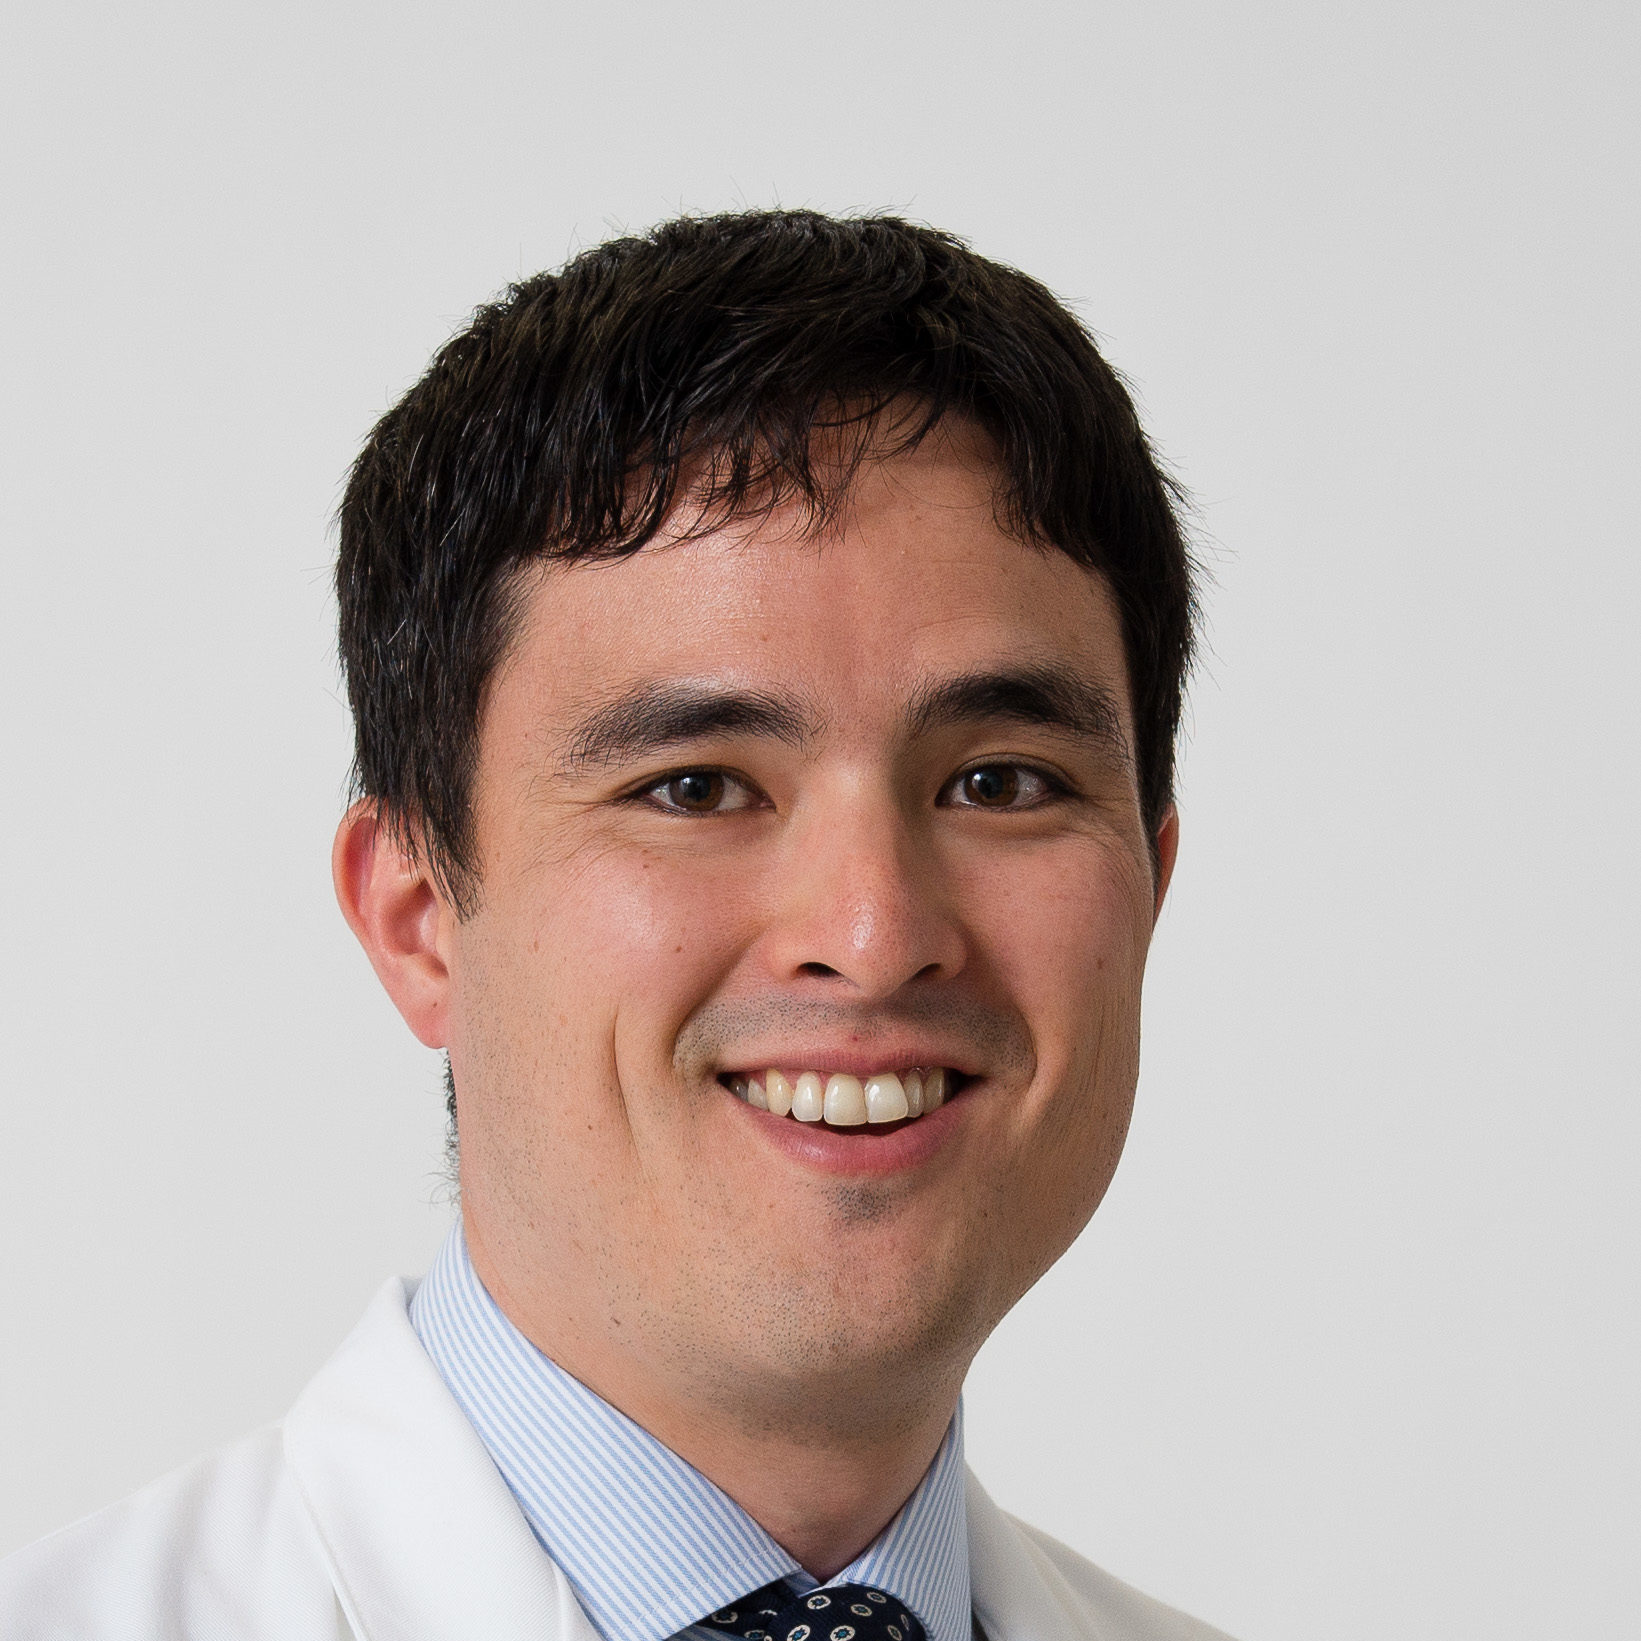 Brandon Oto PA-c is a physician assistant at UConn Health. August 13, 2019 (Tina Encarnacion/UConn Health photo)